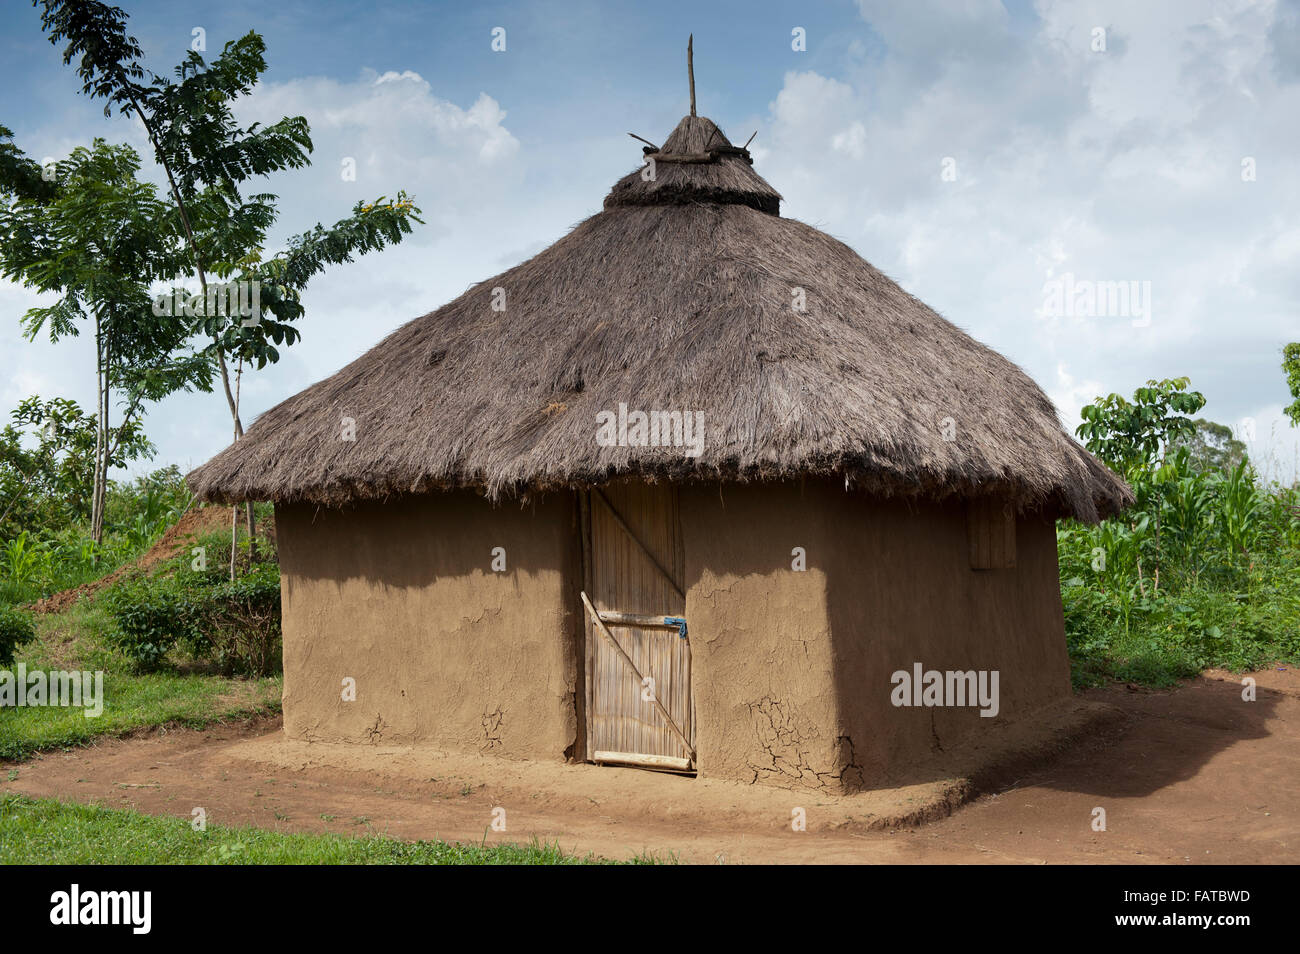 African Mud House Stock Photos African Mud House Stock Images Alamy